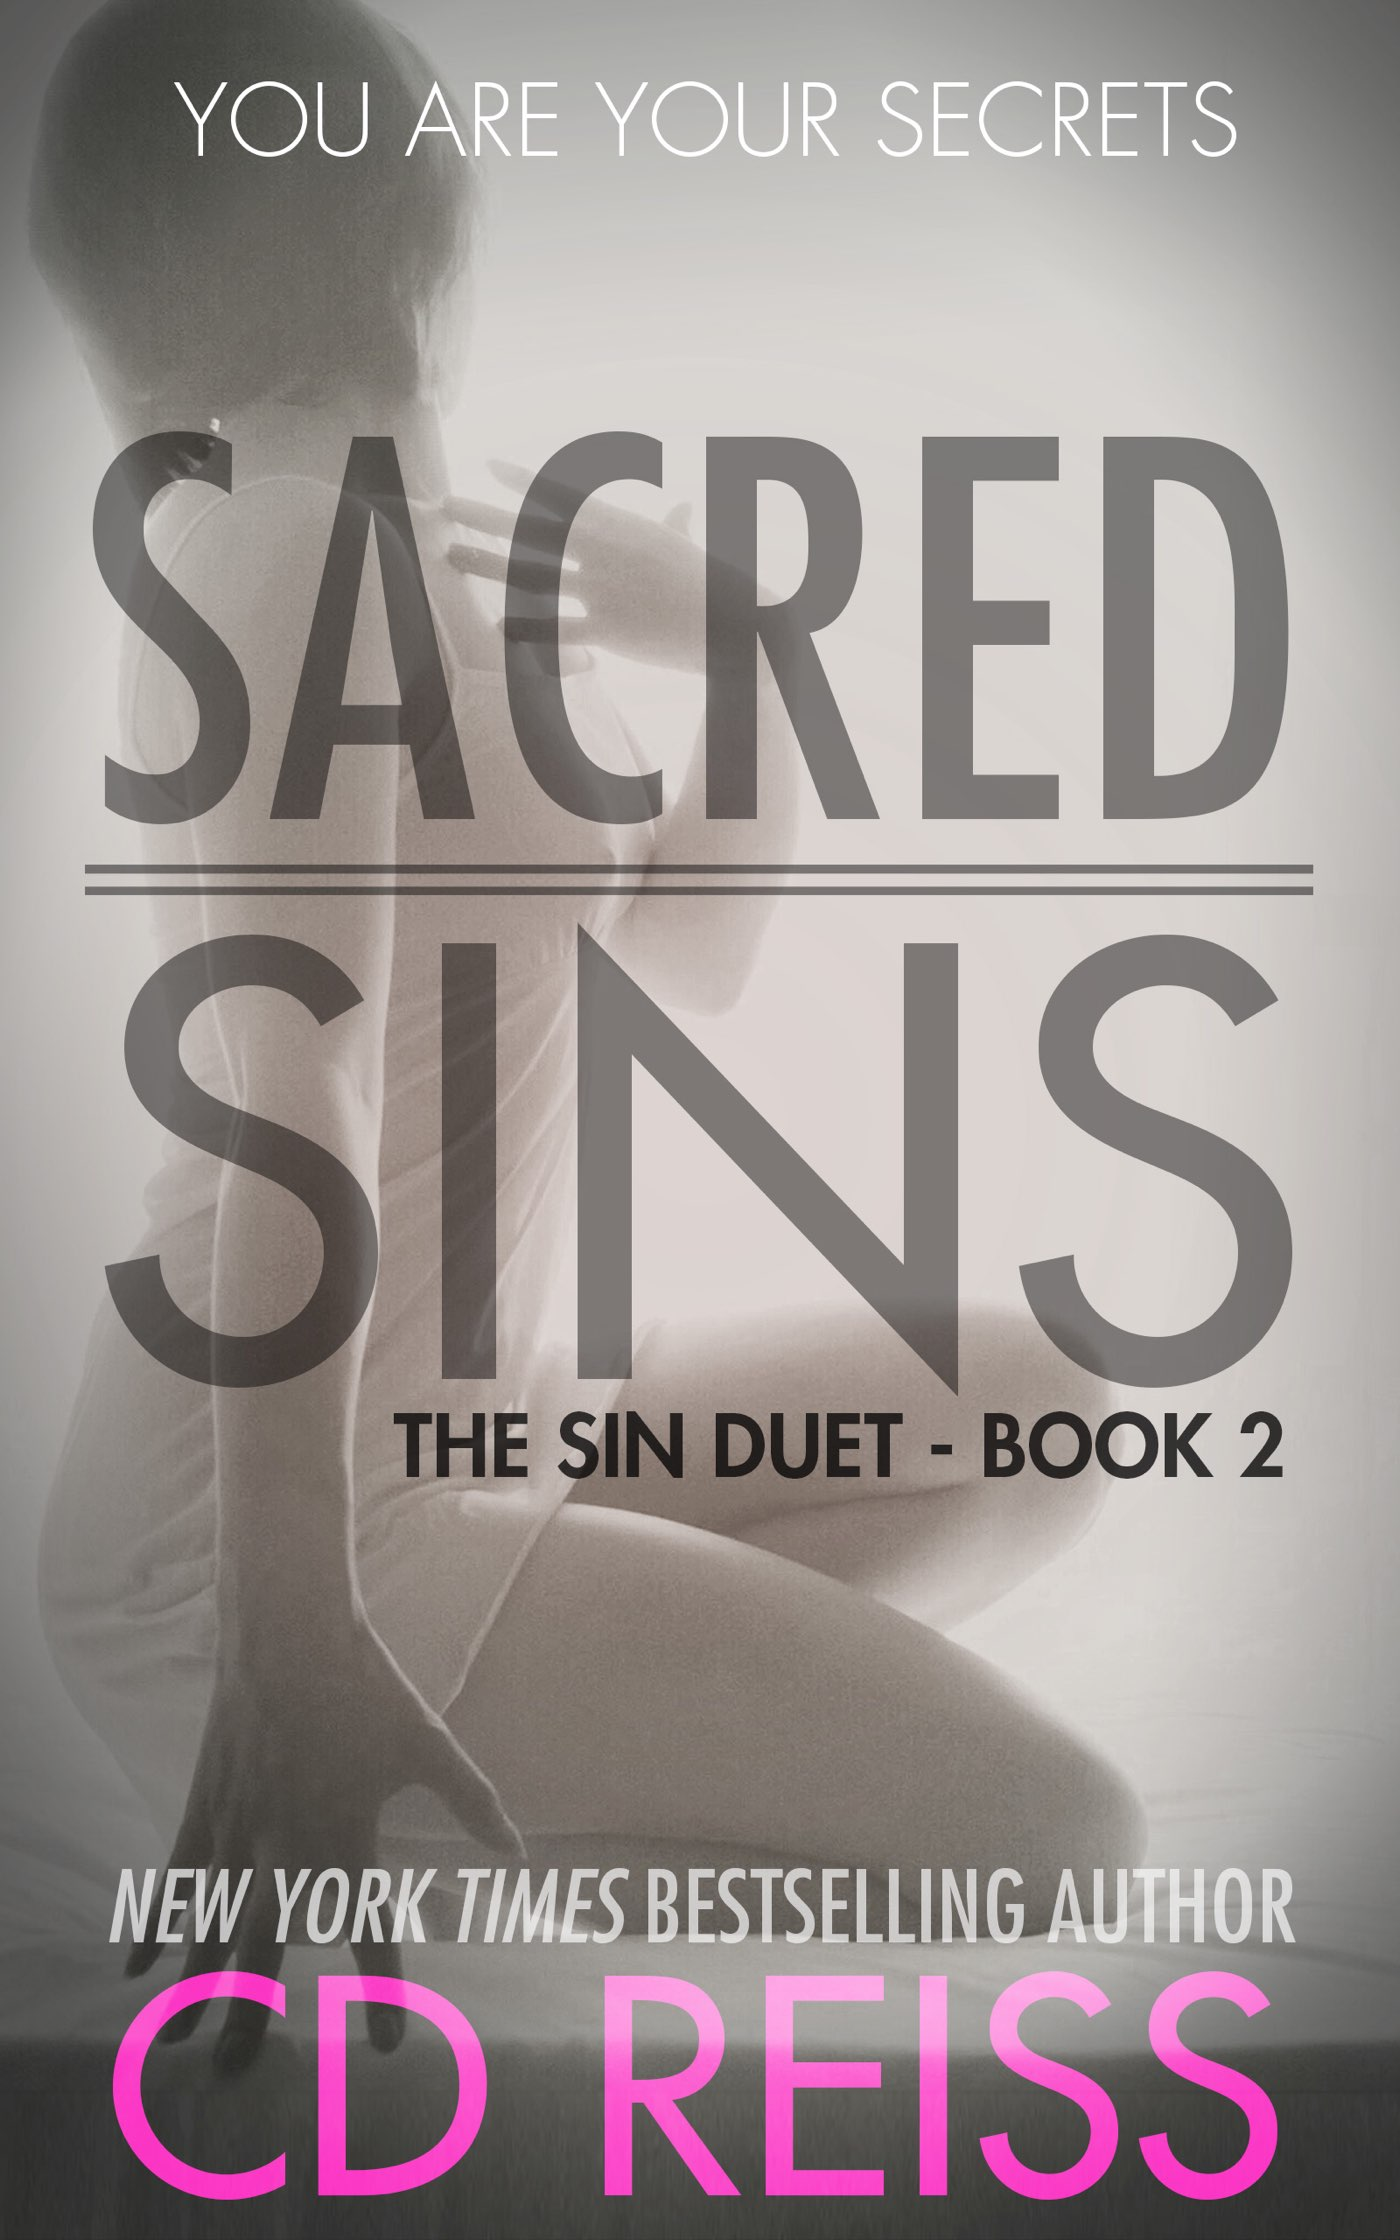 Sacred Sins - book two in the Sin Duet by New York Times Bestselling Romance Author CD Reiss